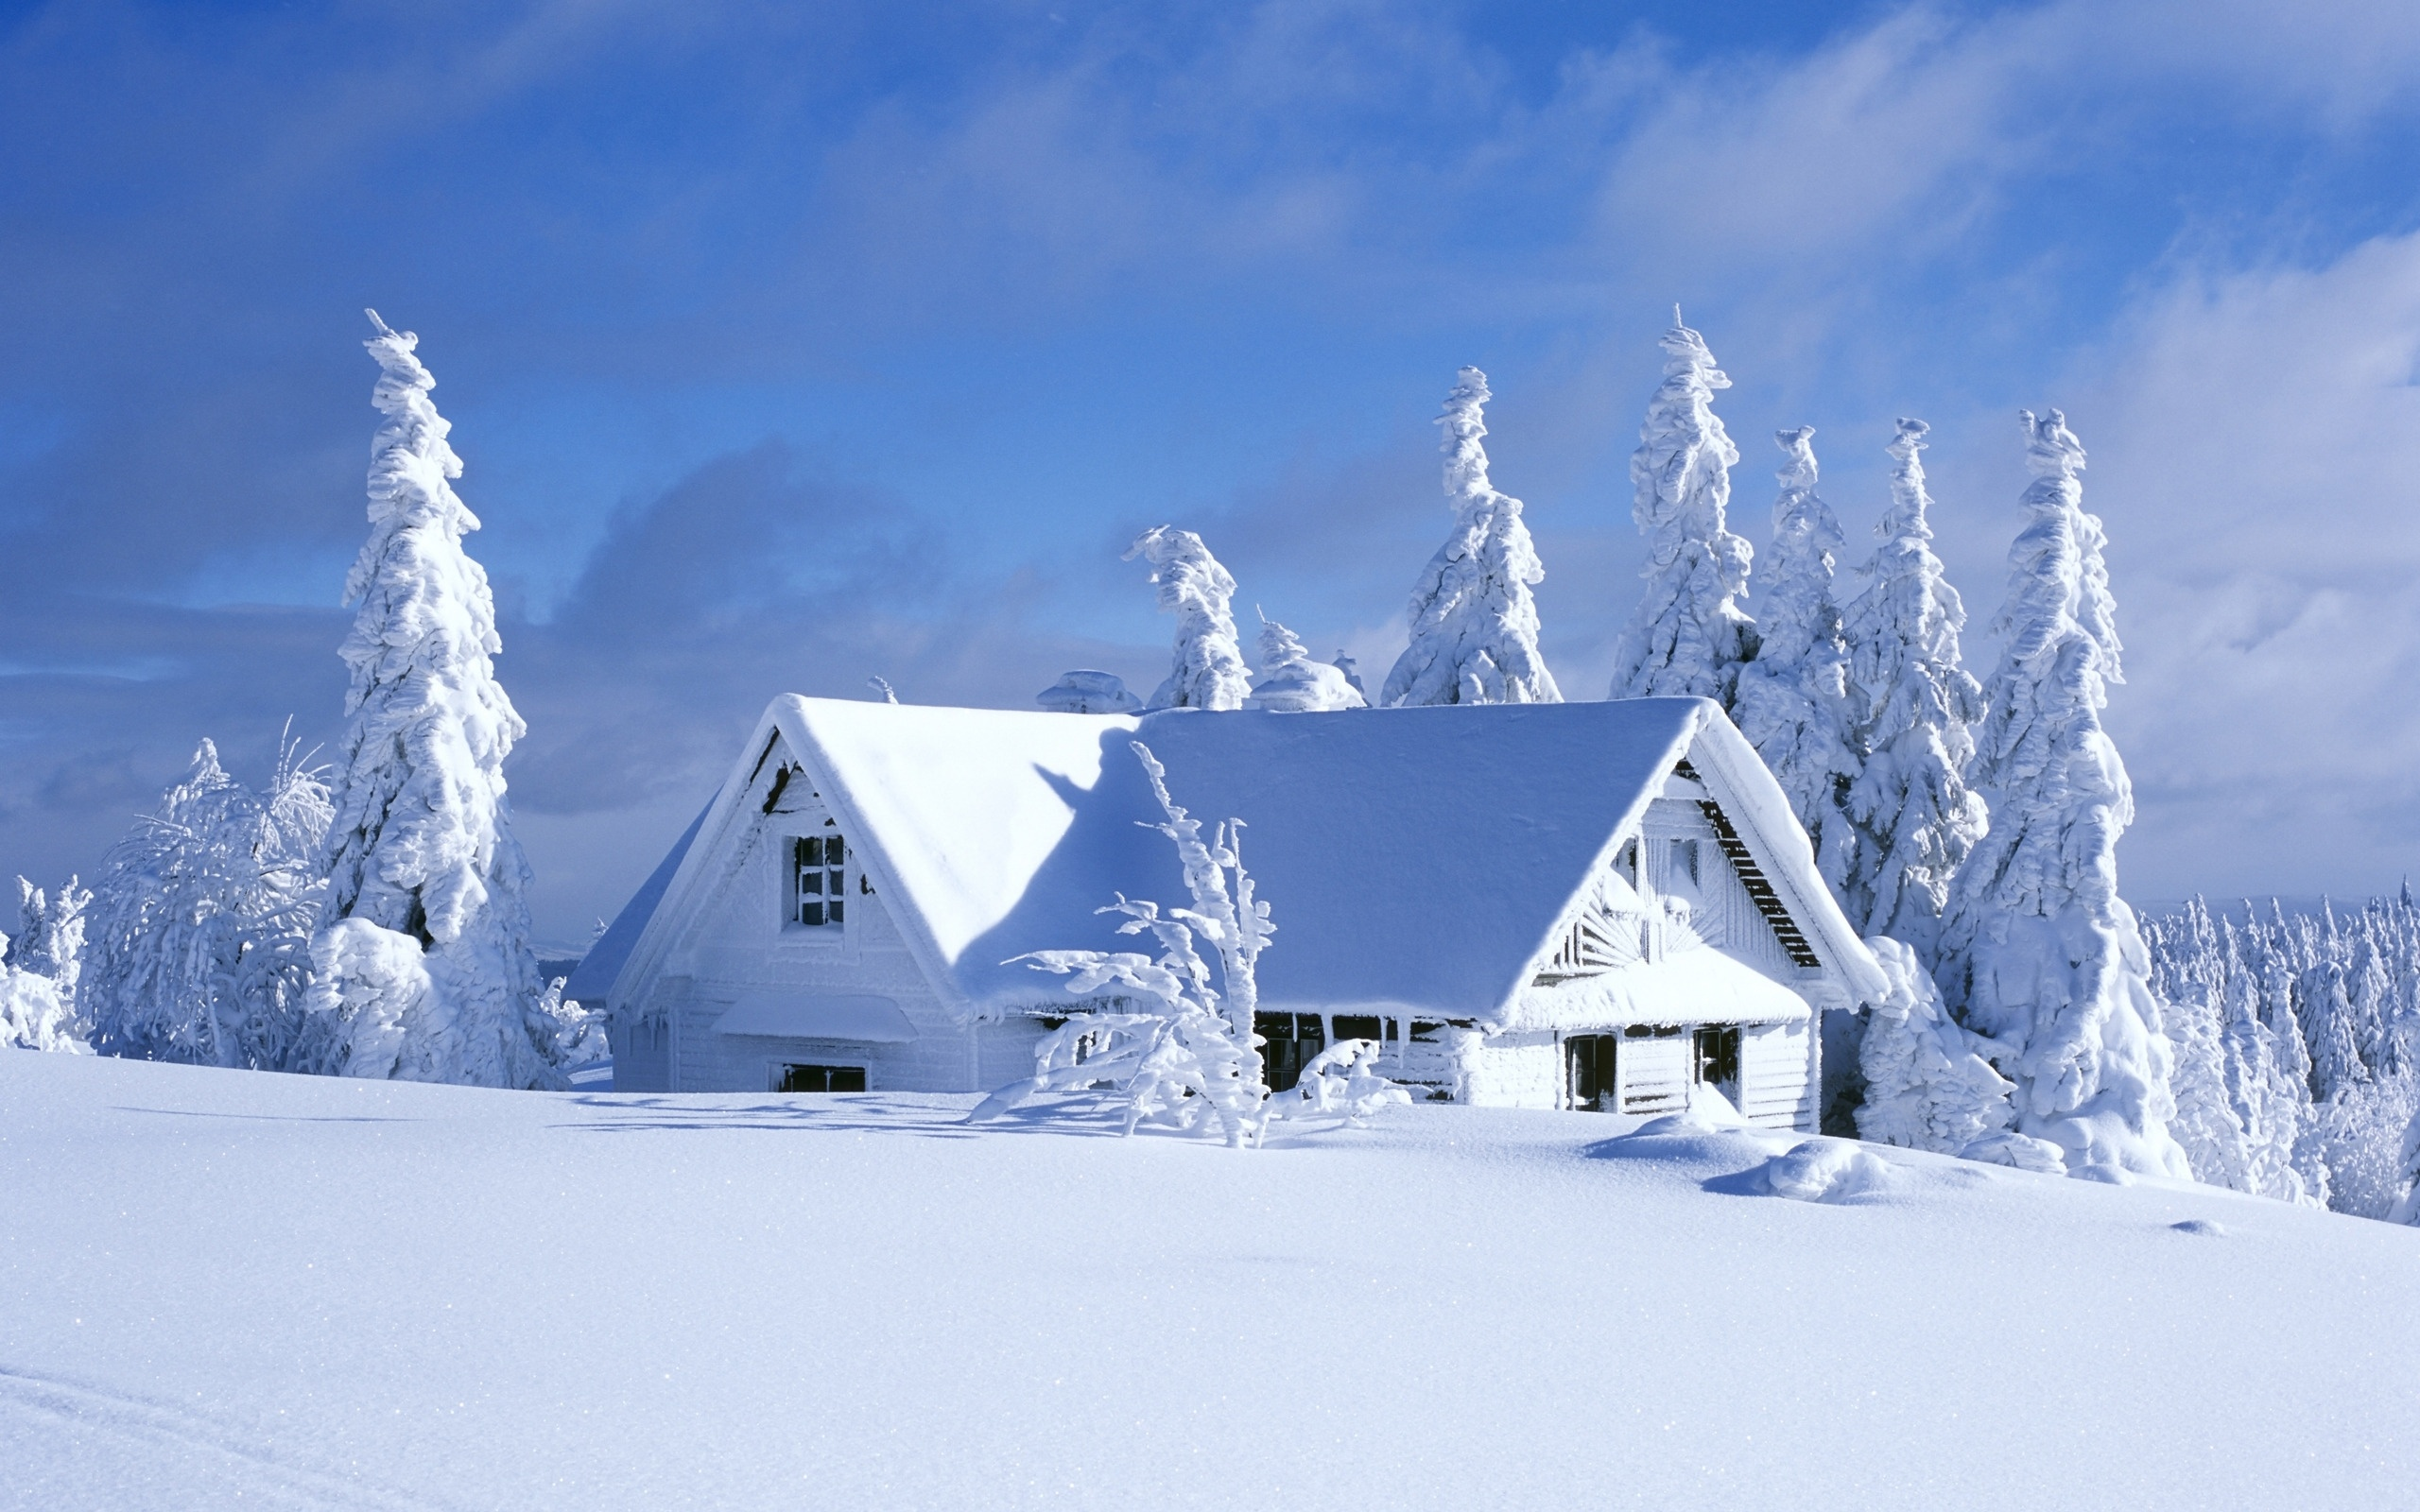 Covered In Snow wallpaper High Quality WallpapersWallpaper Desktop 2560x1600